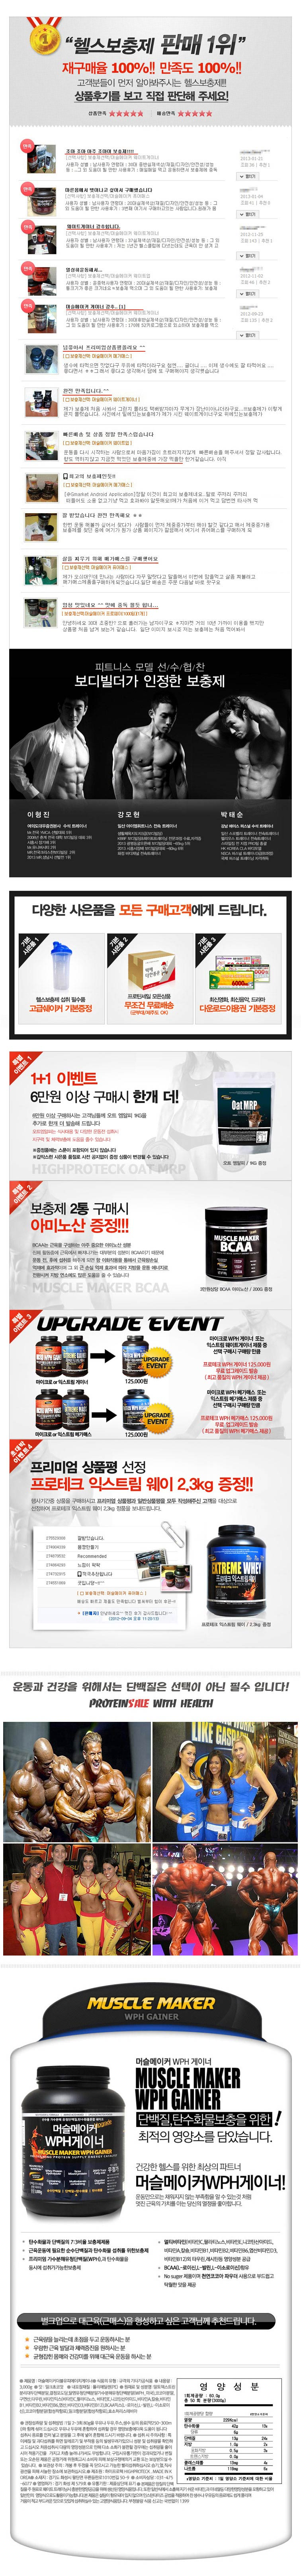 [ etc ] MuscleMaker WPH Weight Gainer (ProteinSale)蛋白质粉补充/保健品/送摇摇杯